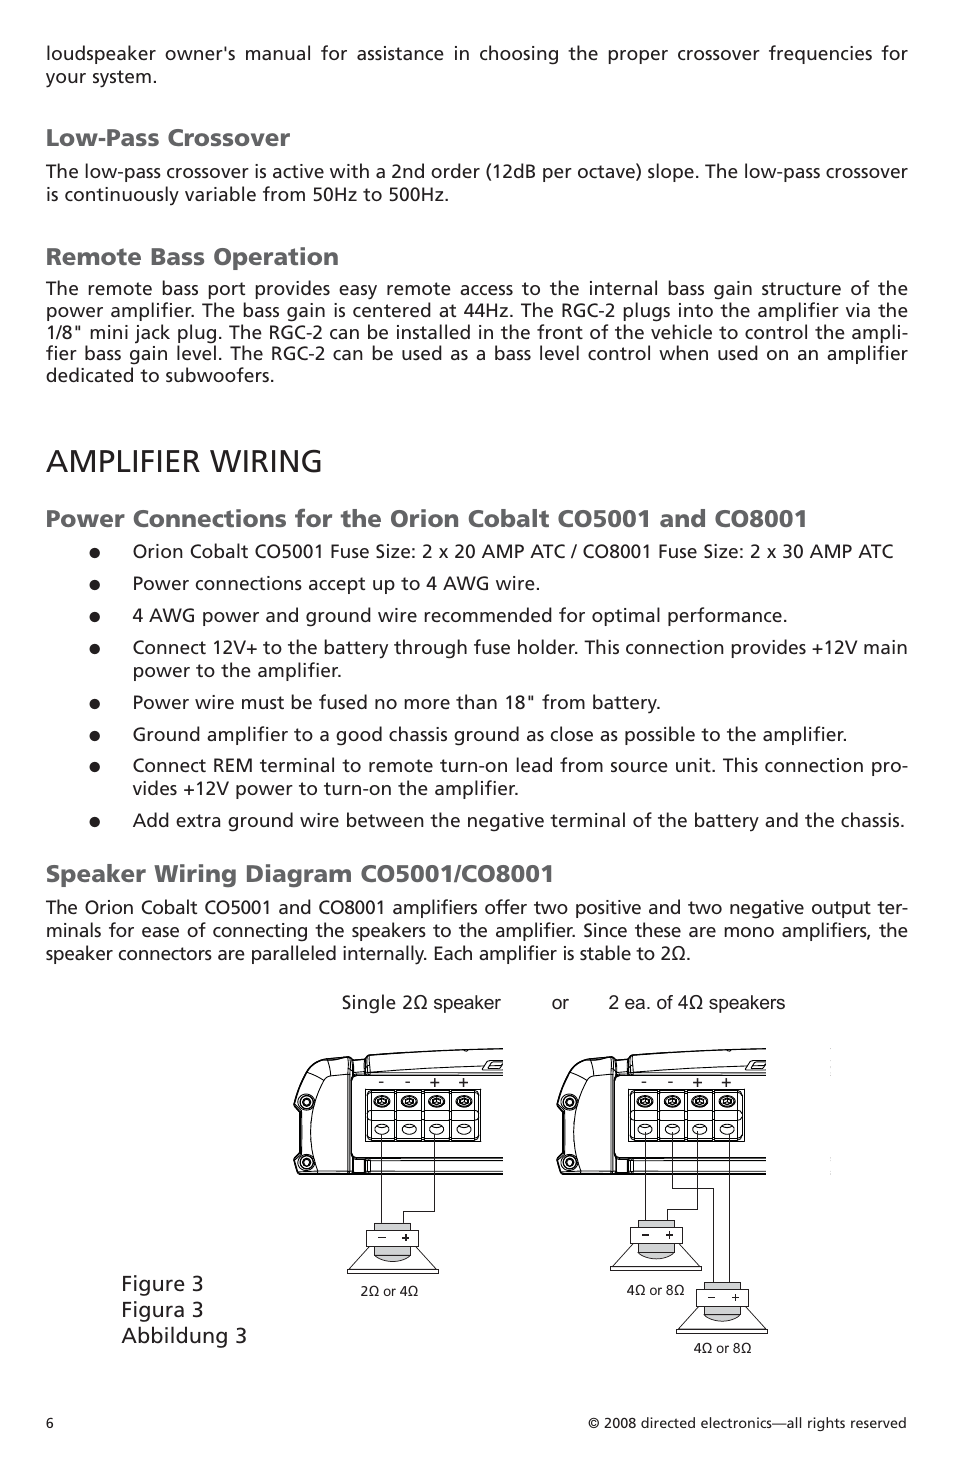 hight resolution of amplifier wiring low pass crossover remote bass operation orion c08001 user manual page 7 66